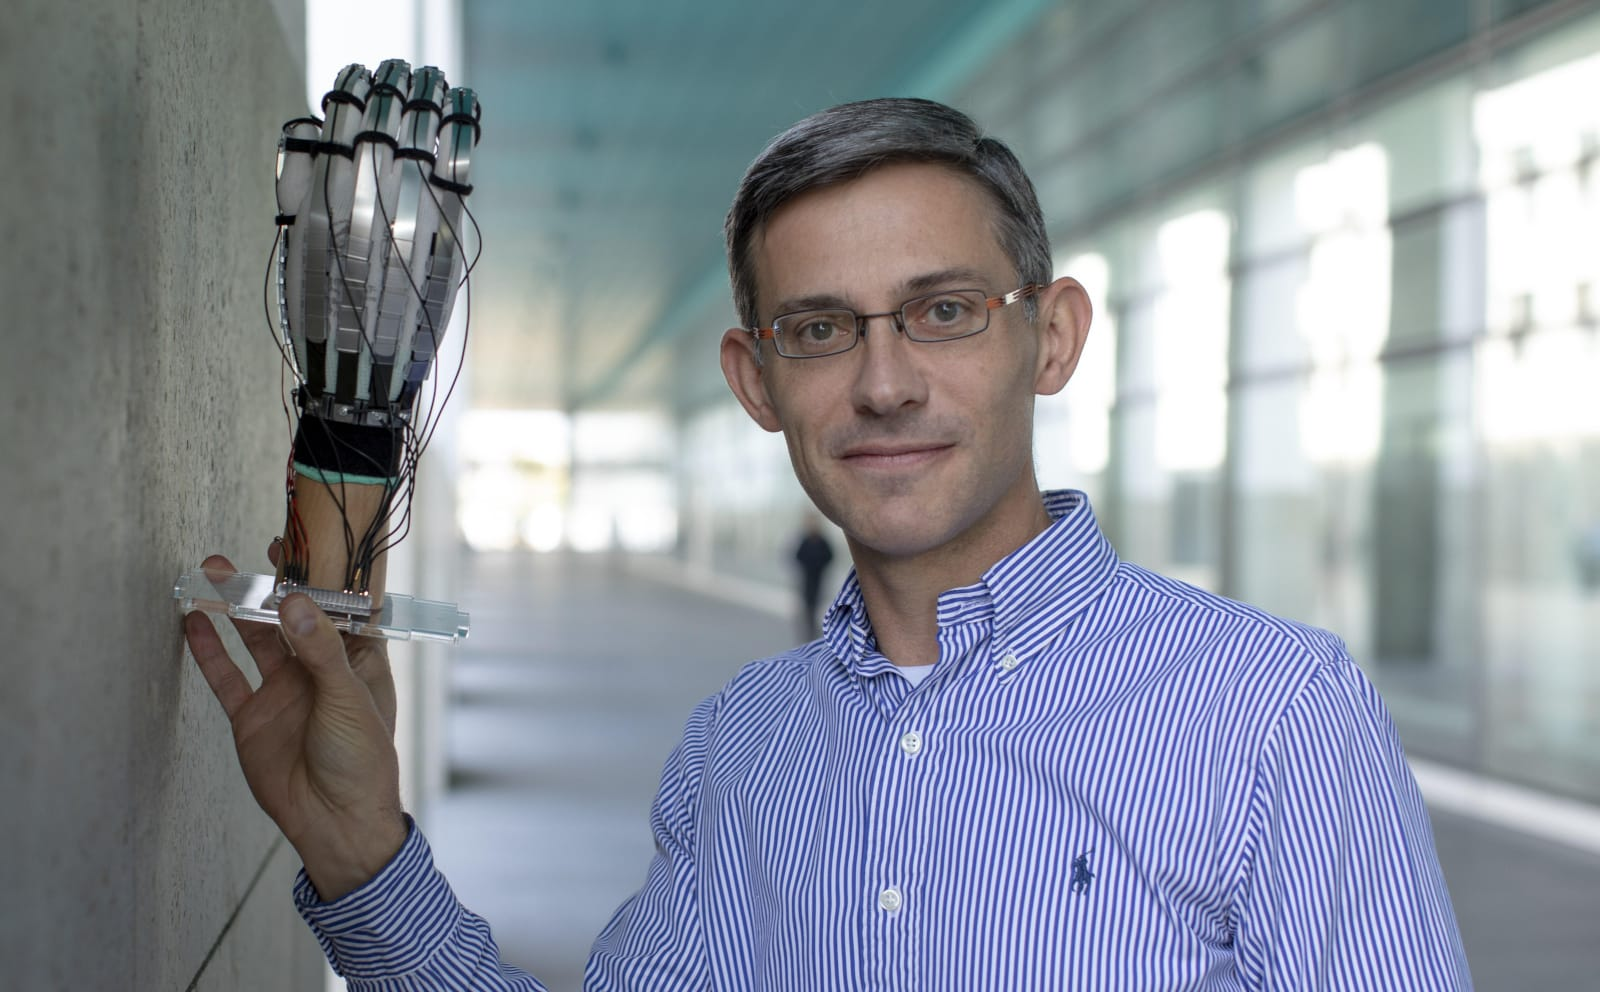 Lightweight gloves help you touch virtual objects